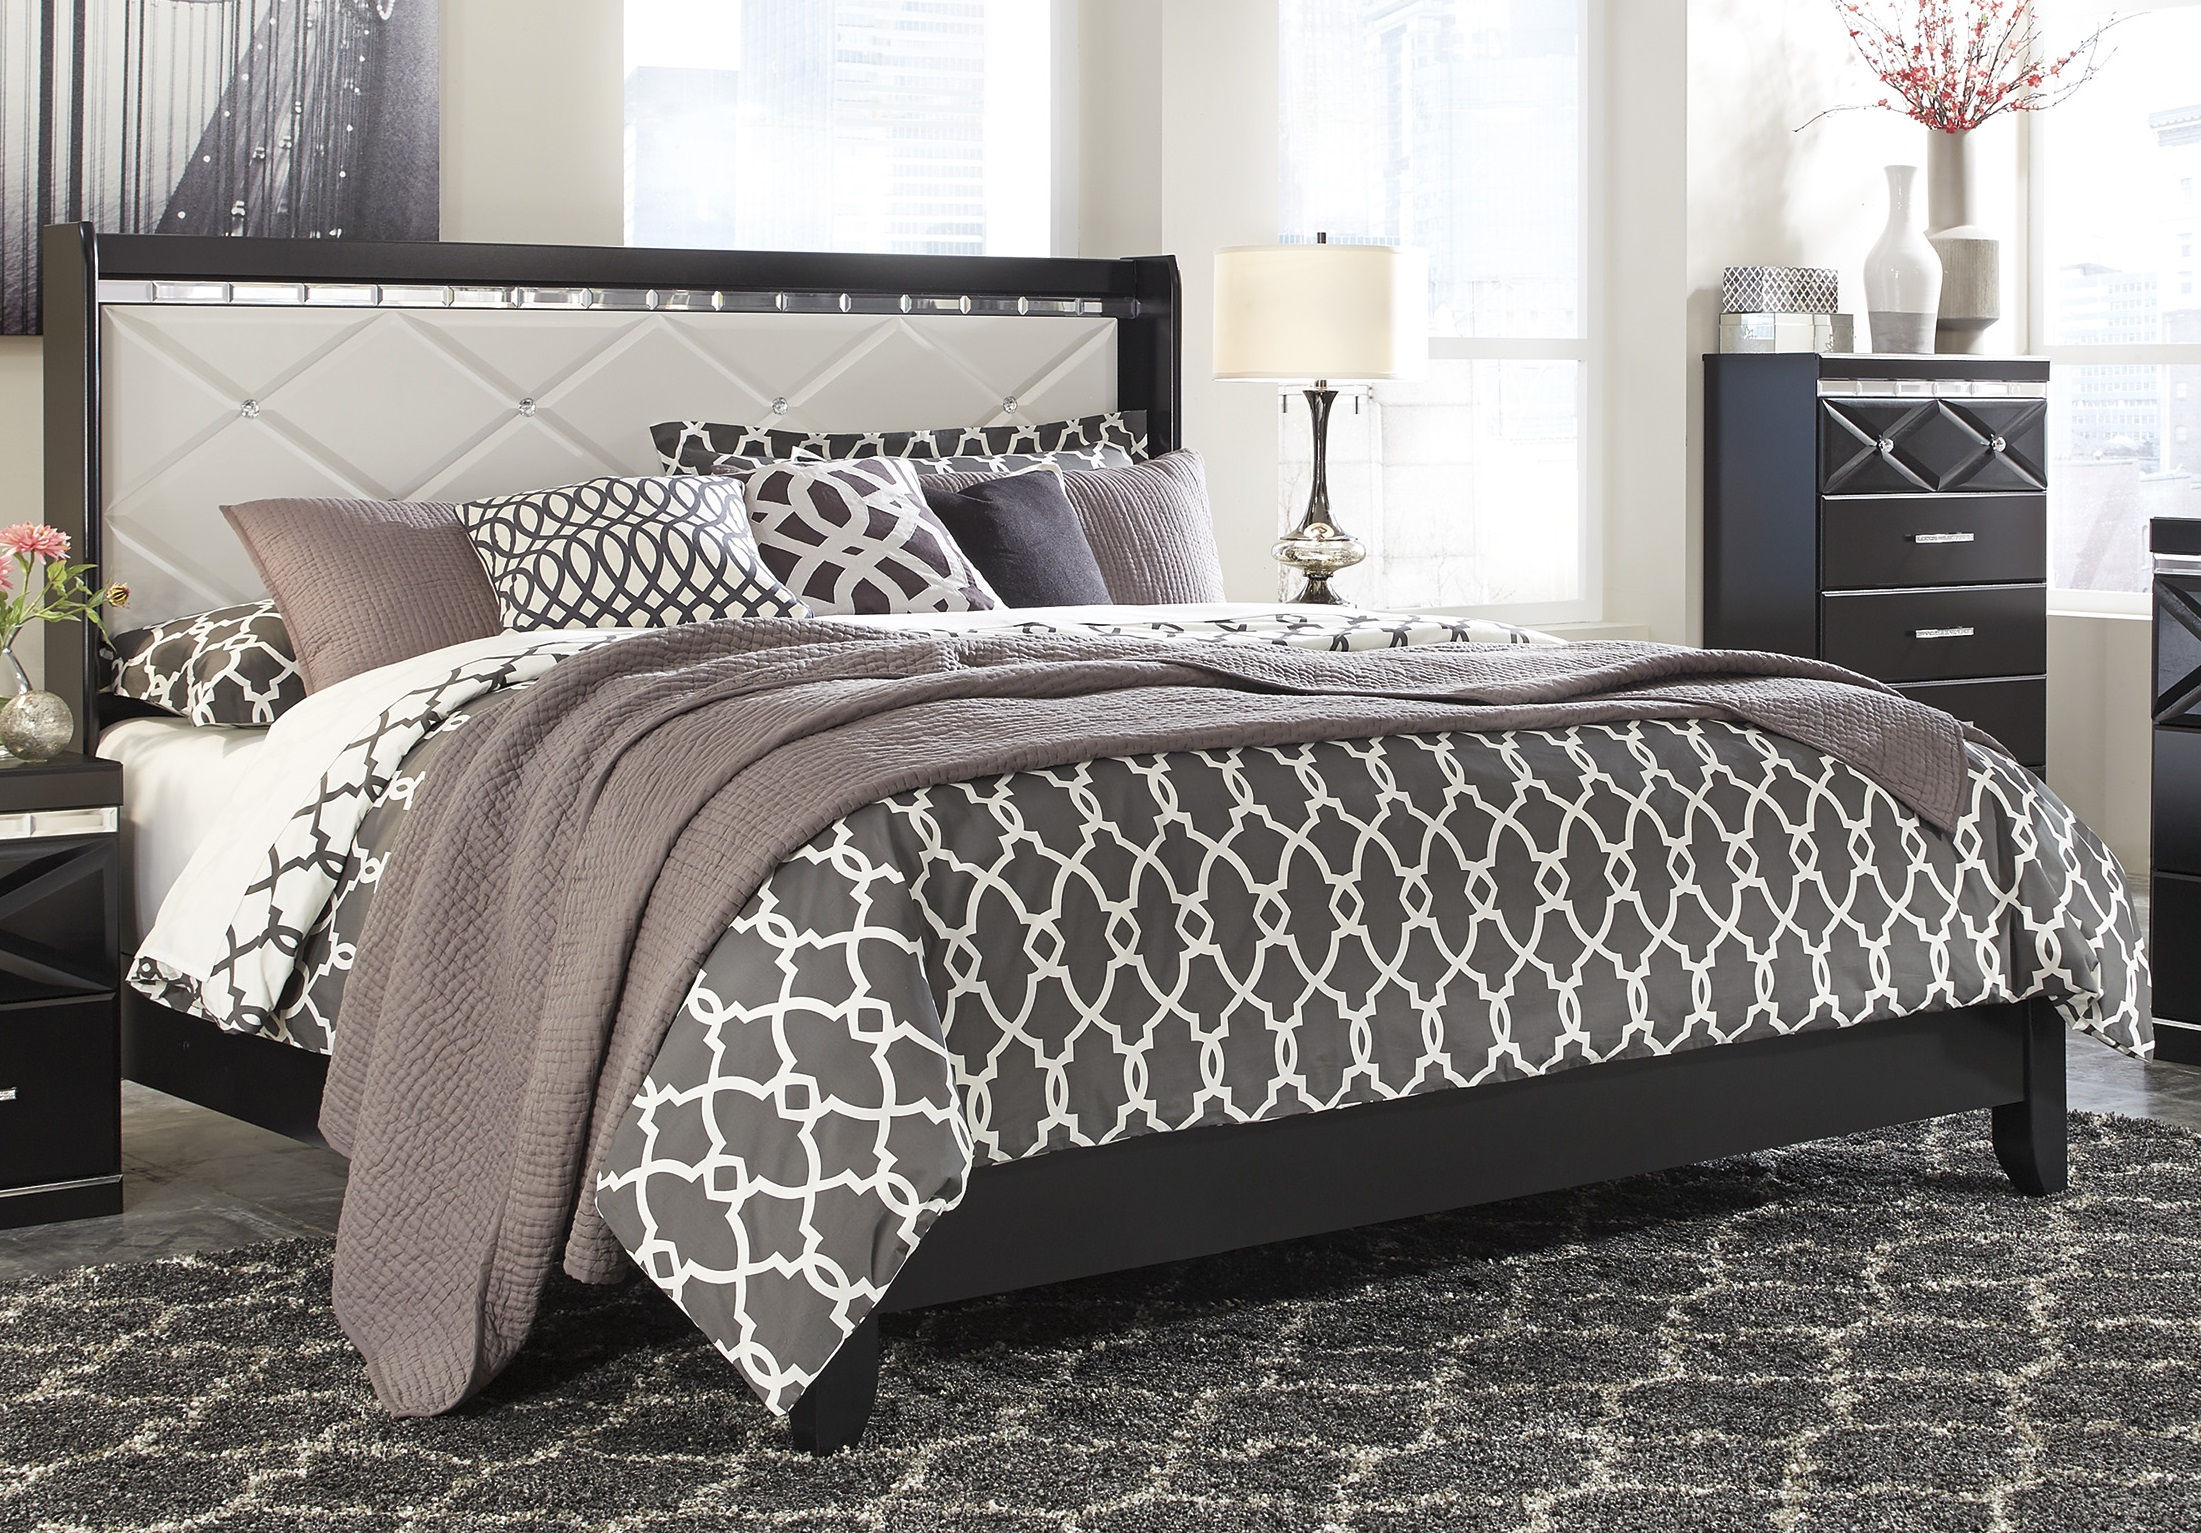 Ashley Furniture Fancee Queen Upholstered Panel Bed The Classy Home